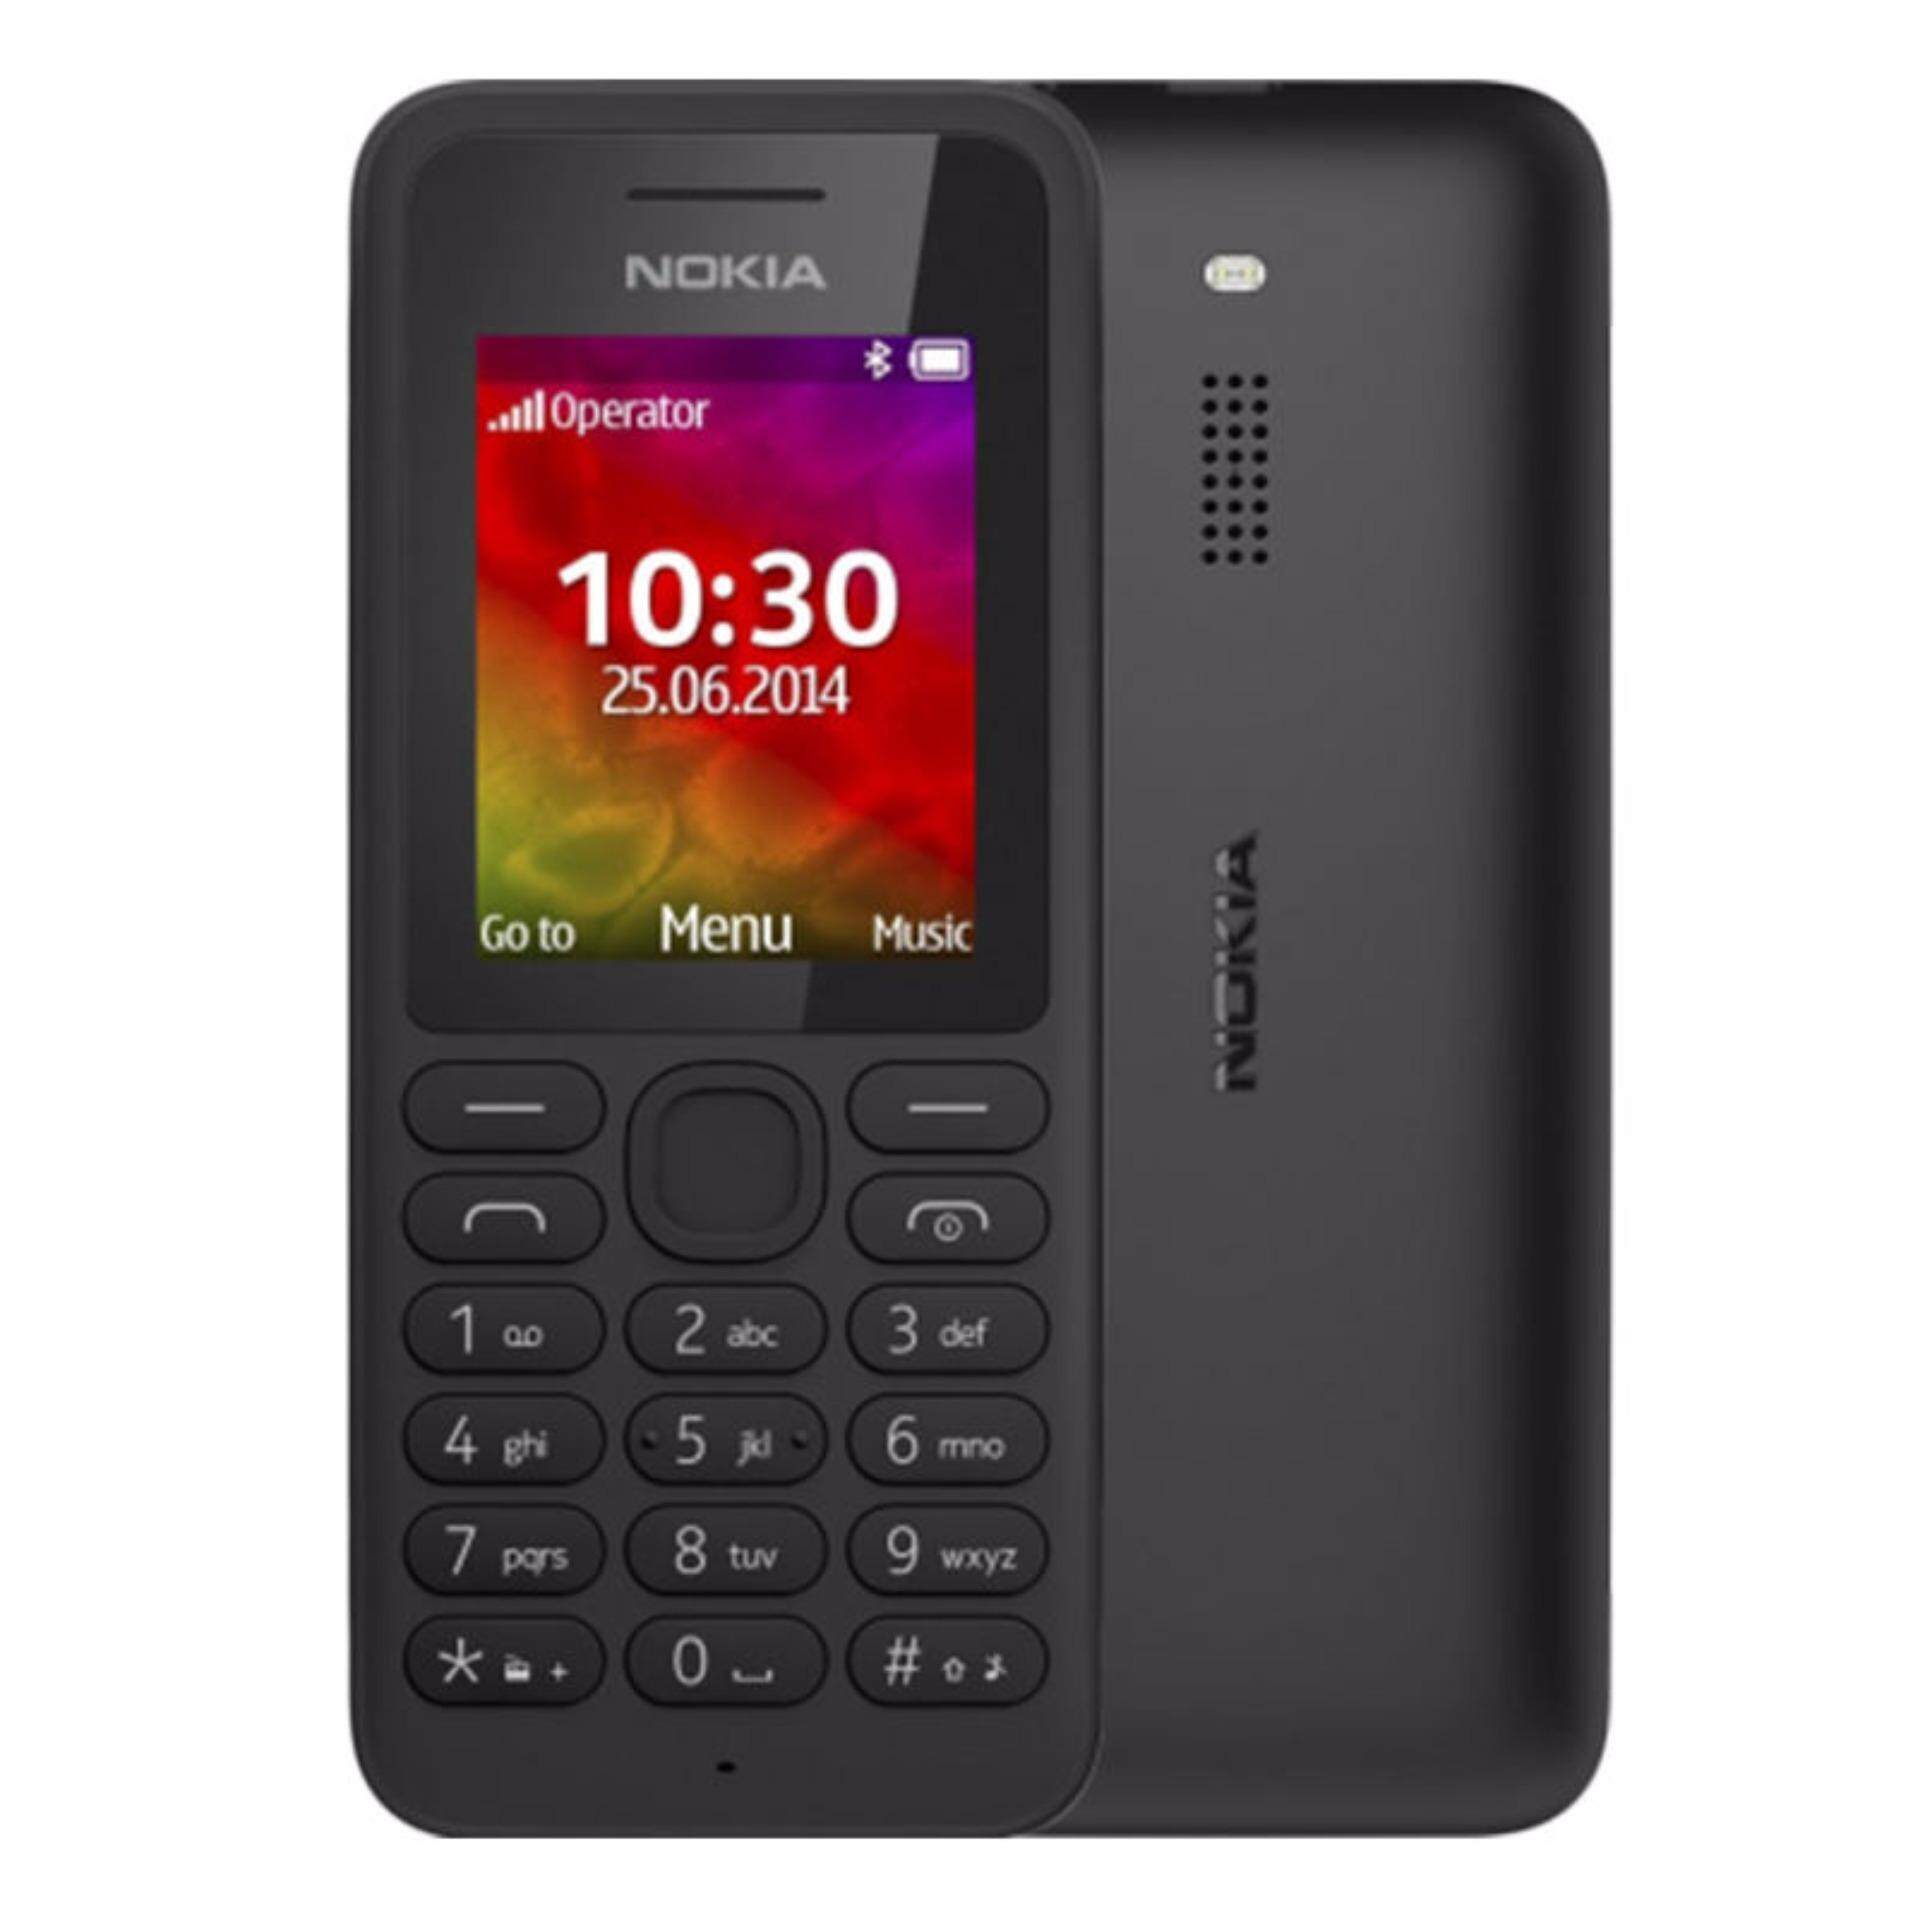 Nokia Mobile Phones At Best Price In Malaysia Lazada